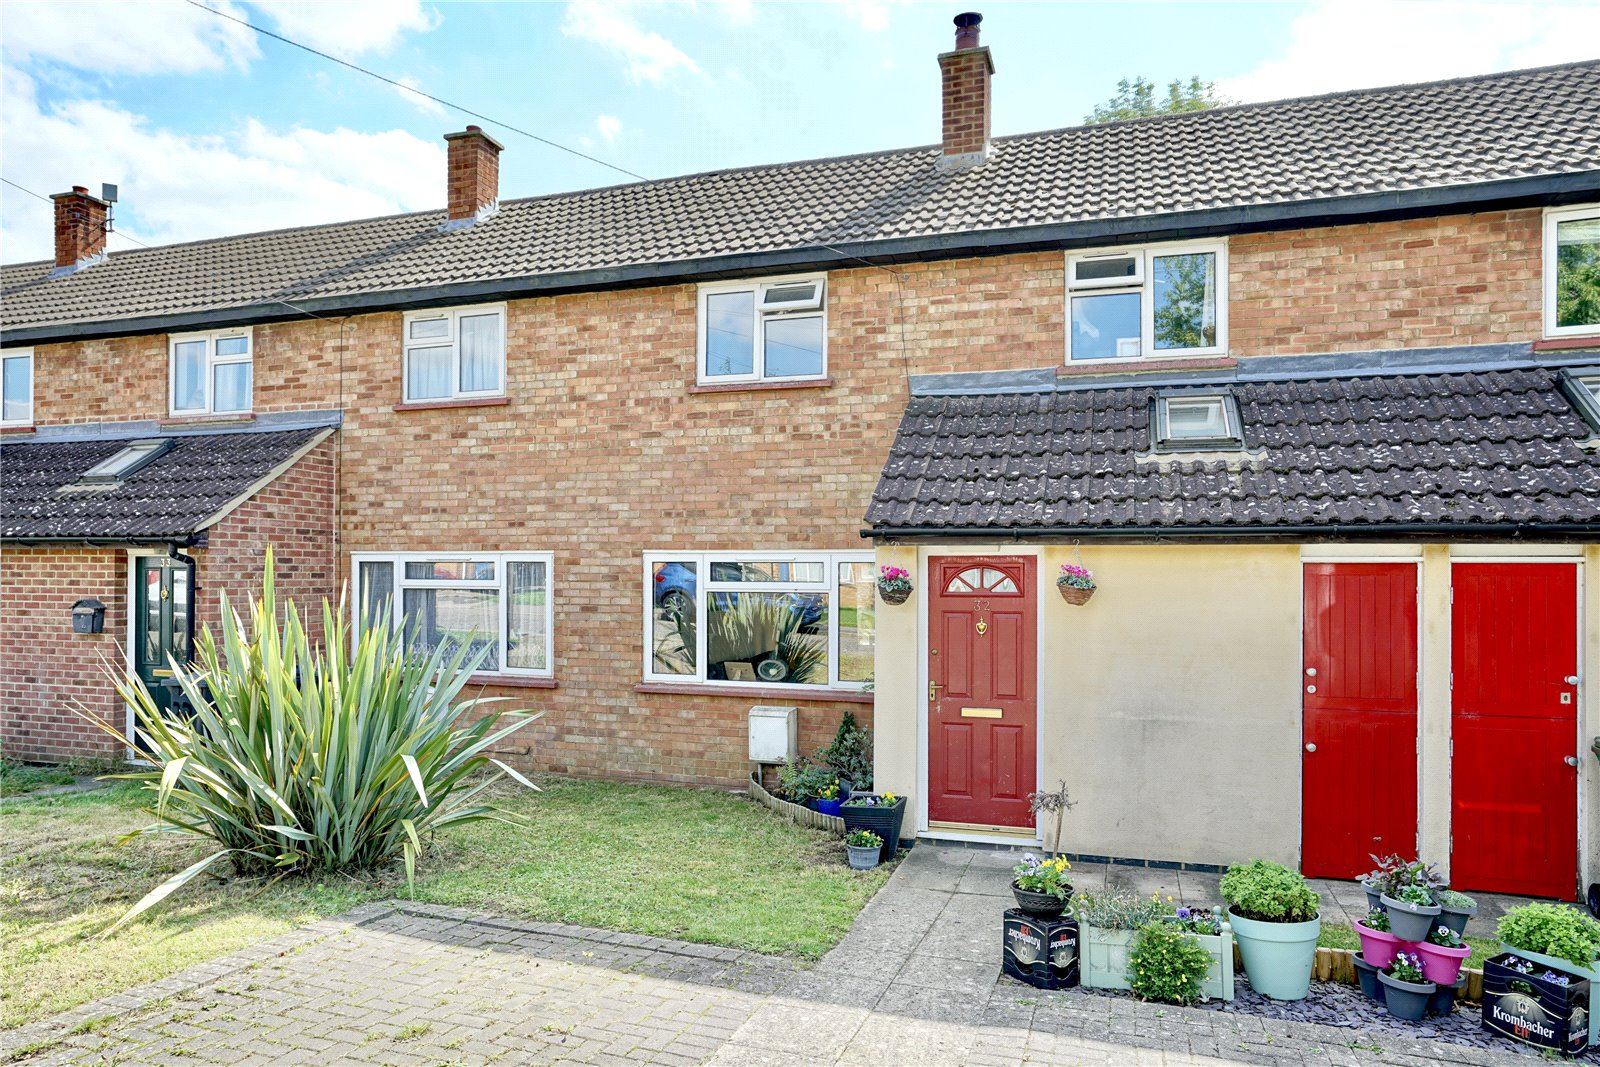 2 bed house for sale in Wyton, PE28 2HG, PE28